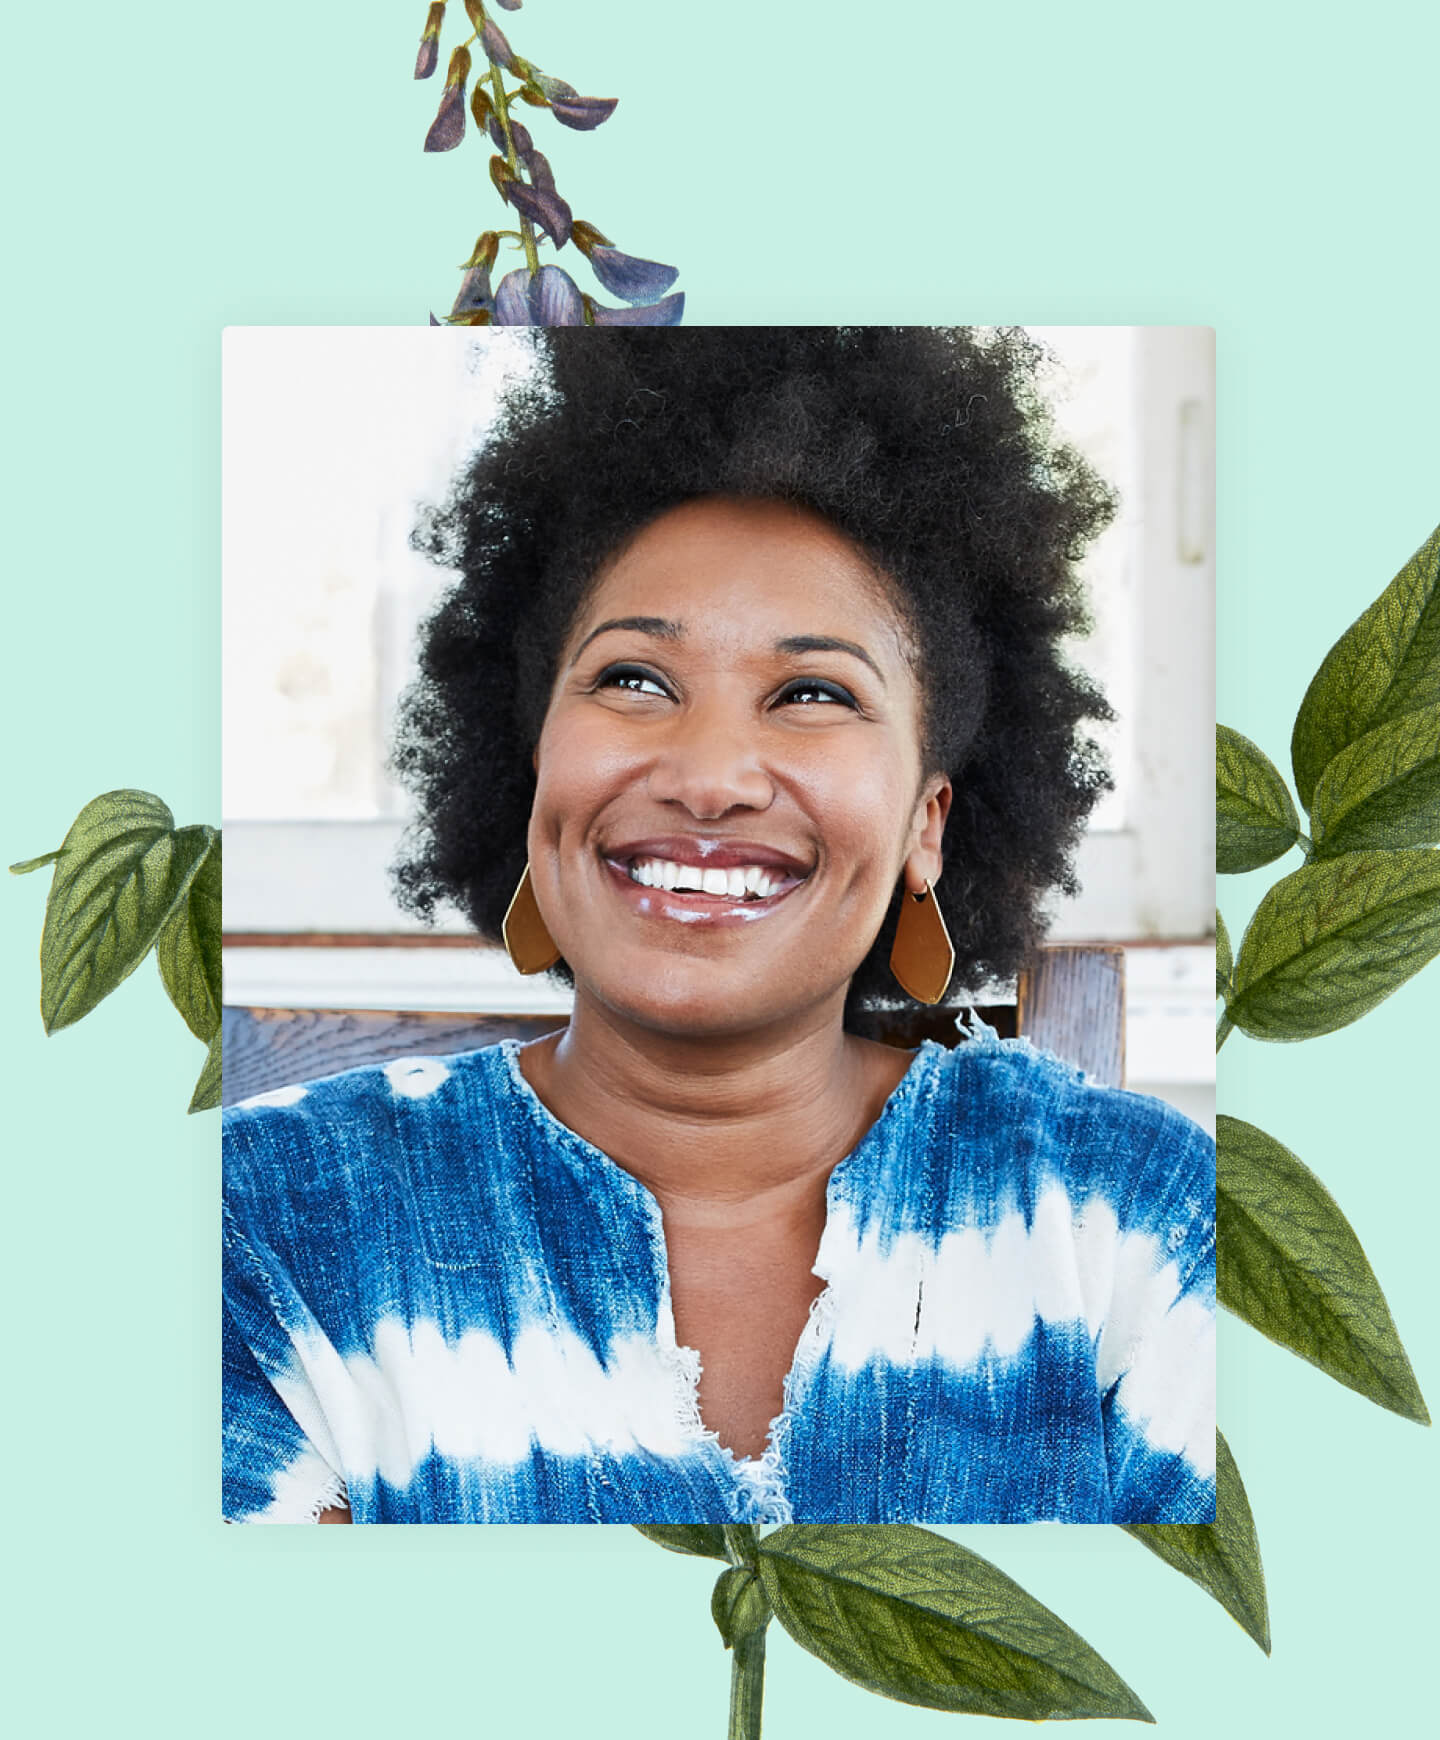 Botanical illustration behind a photo of smiling black woman